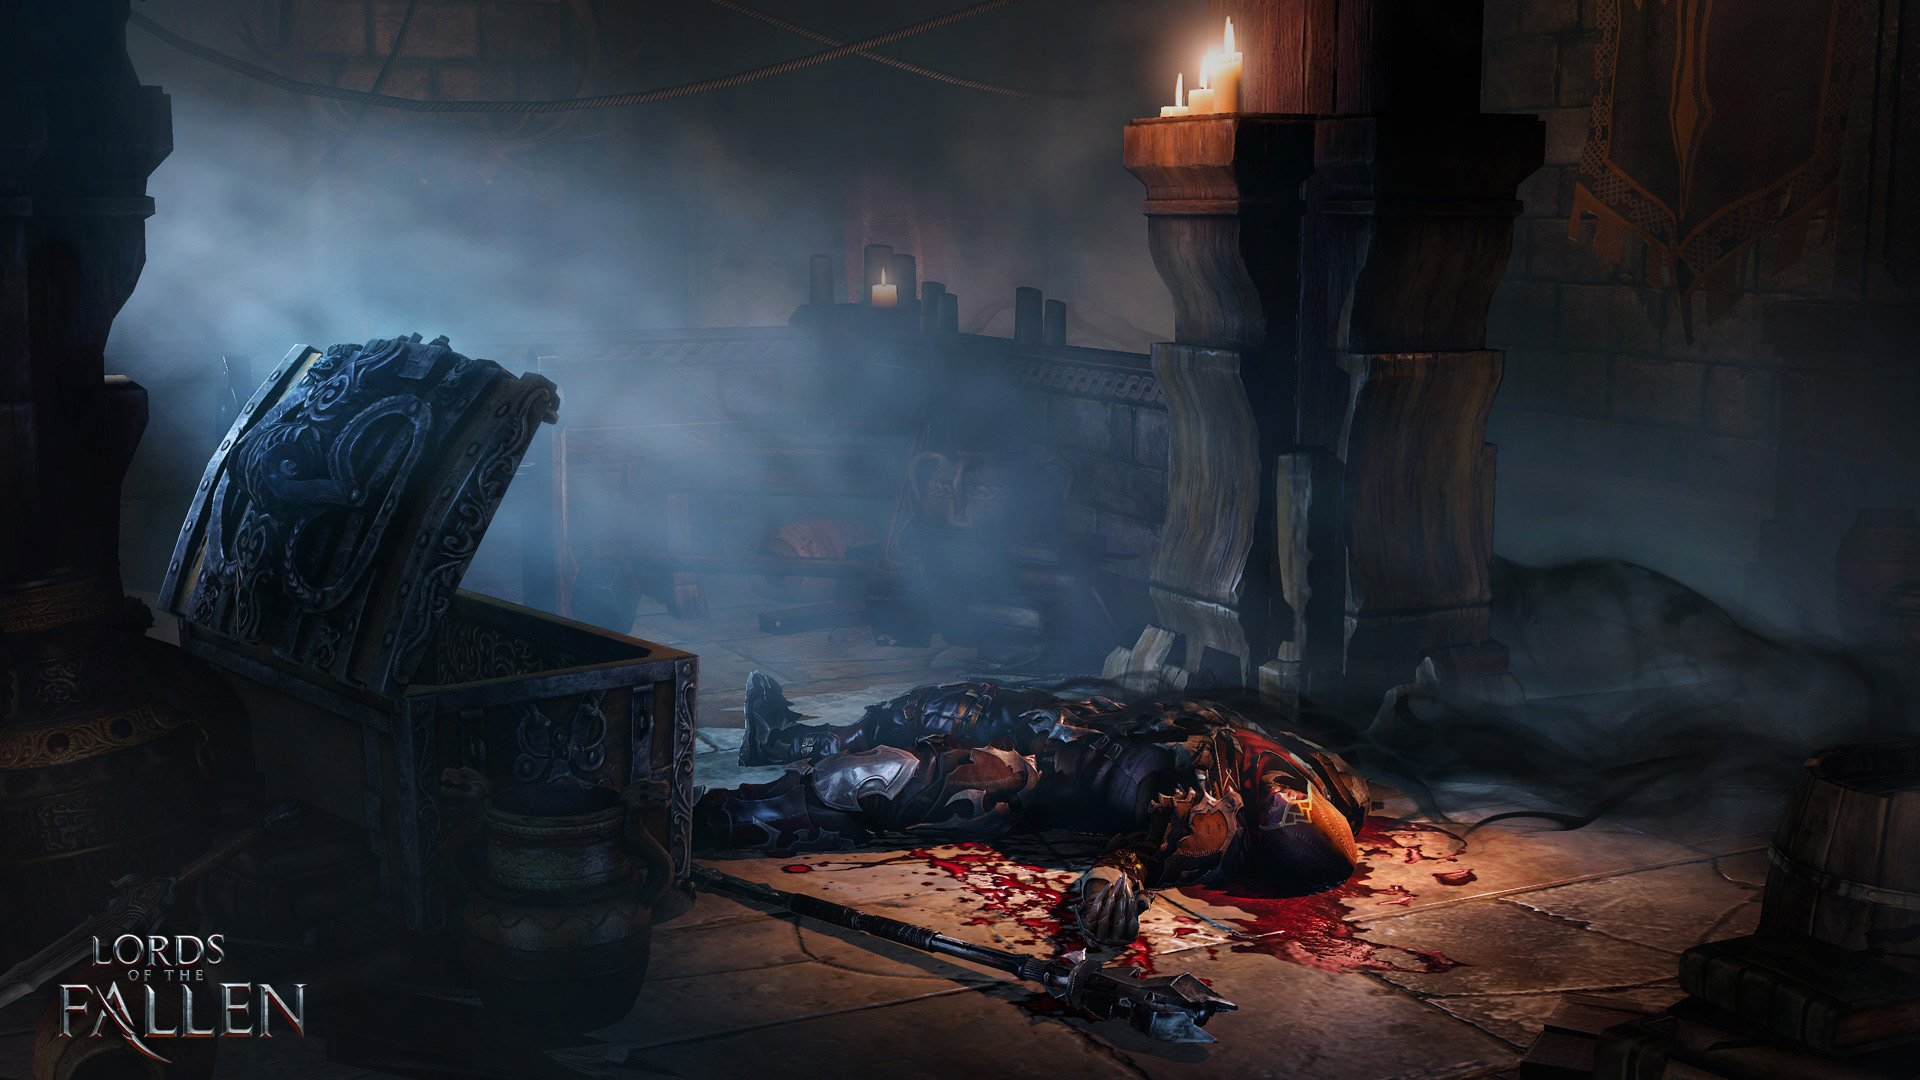 Lords of the Fallen Wallpaper 53058 1920x1080 px 1920x1080